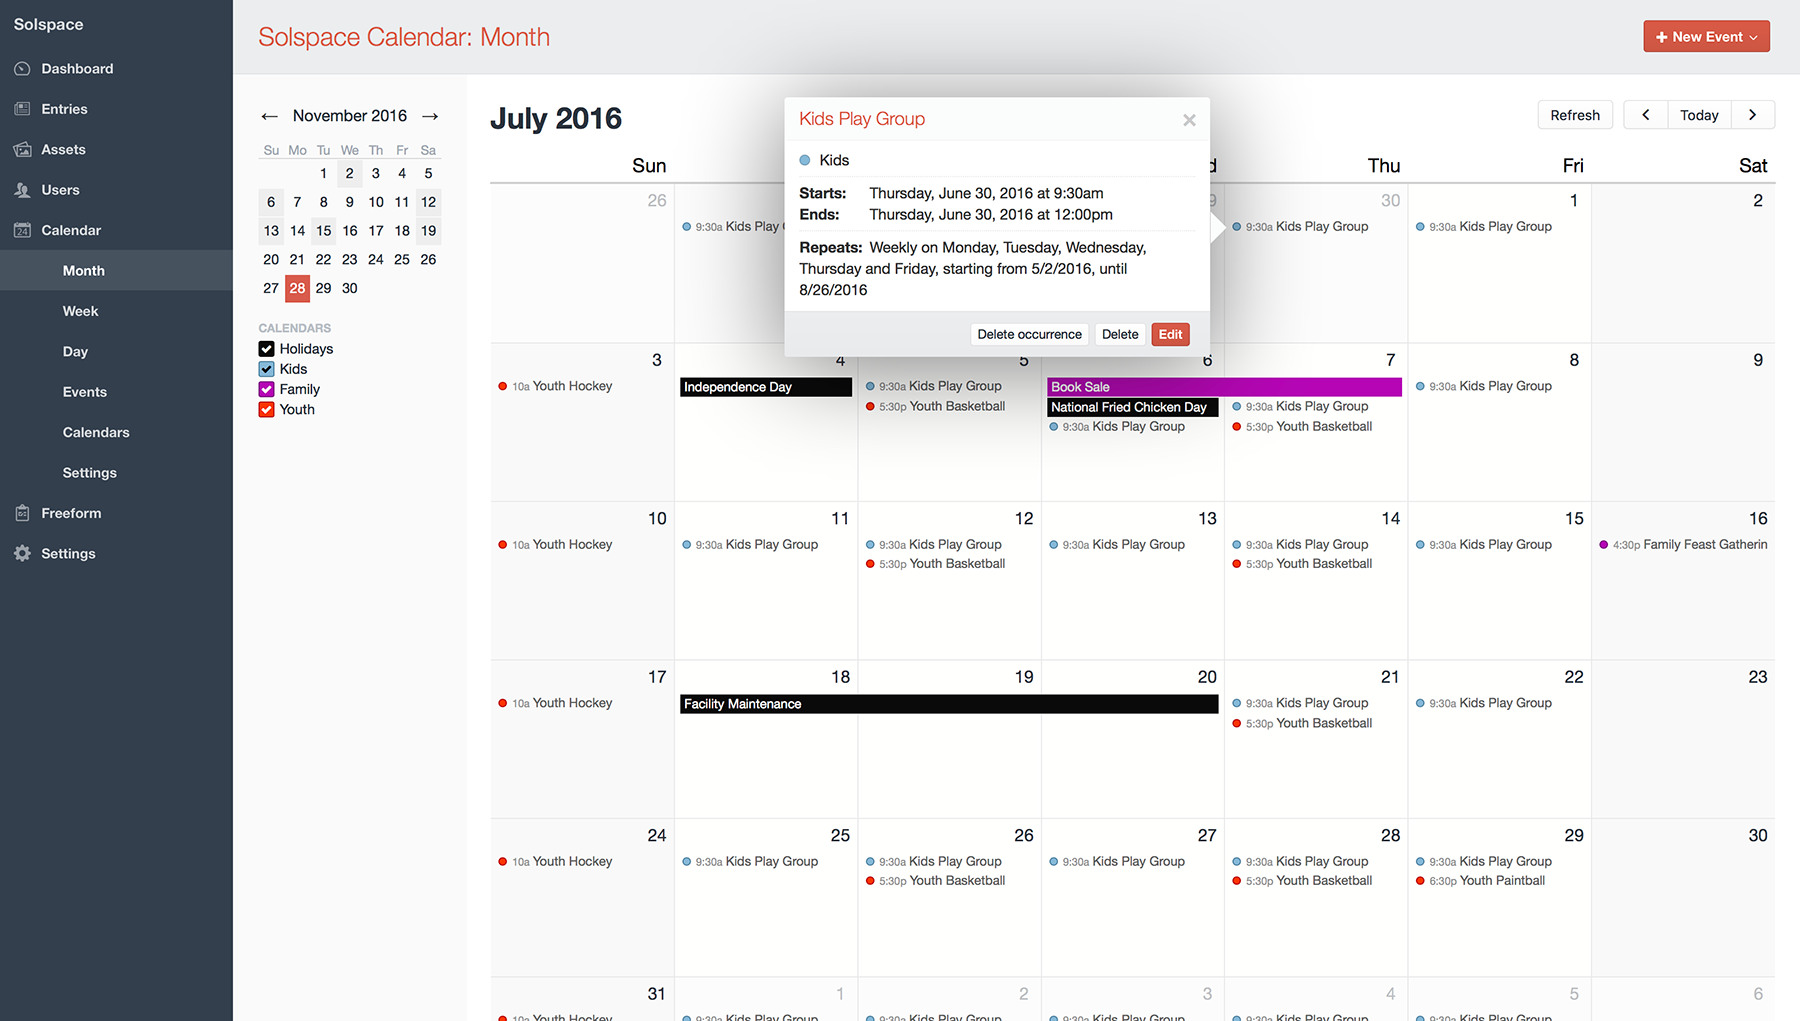 Control Panel - Month view with Sidebar (calendar filtering and mini calendar)